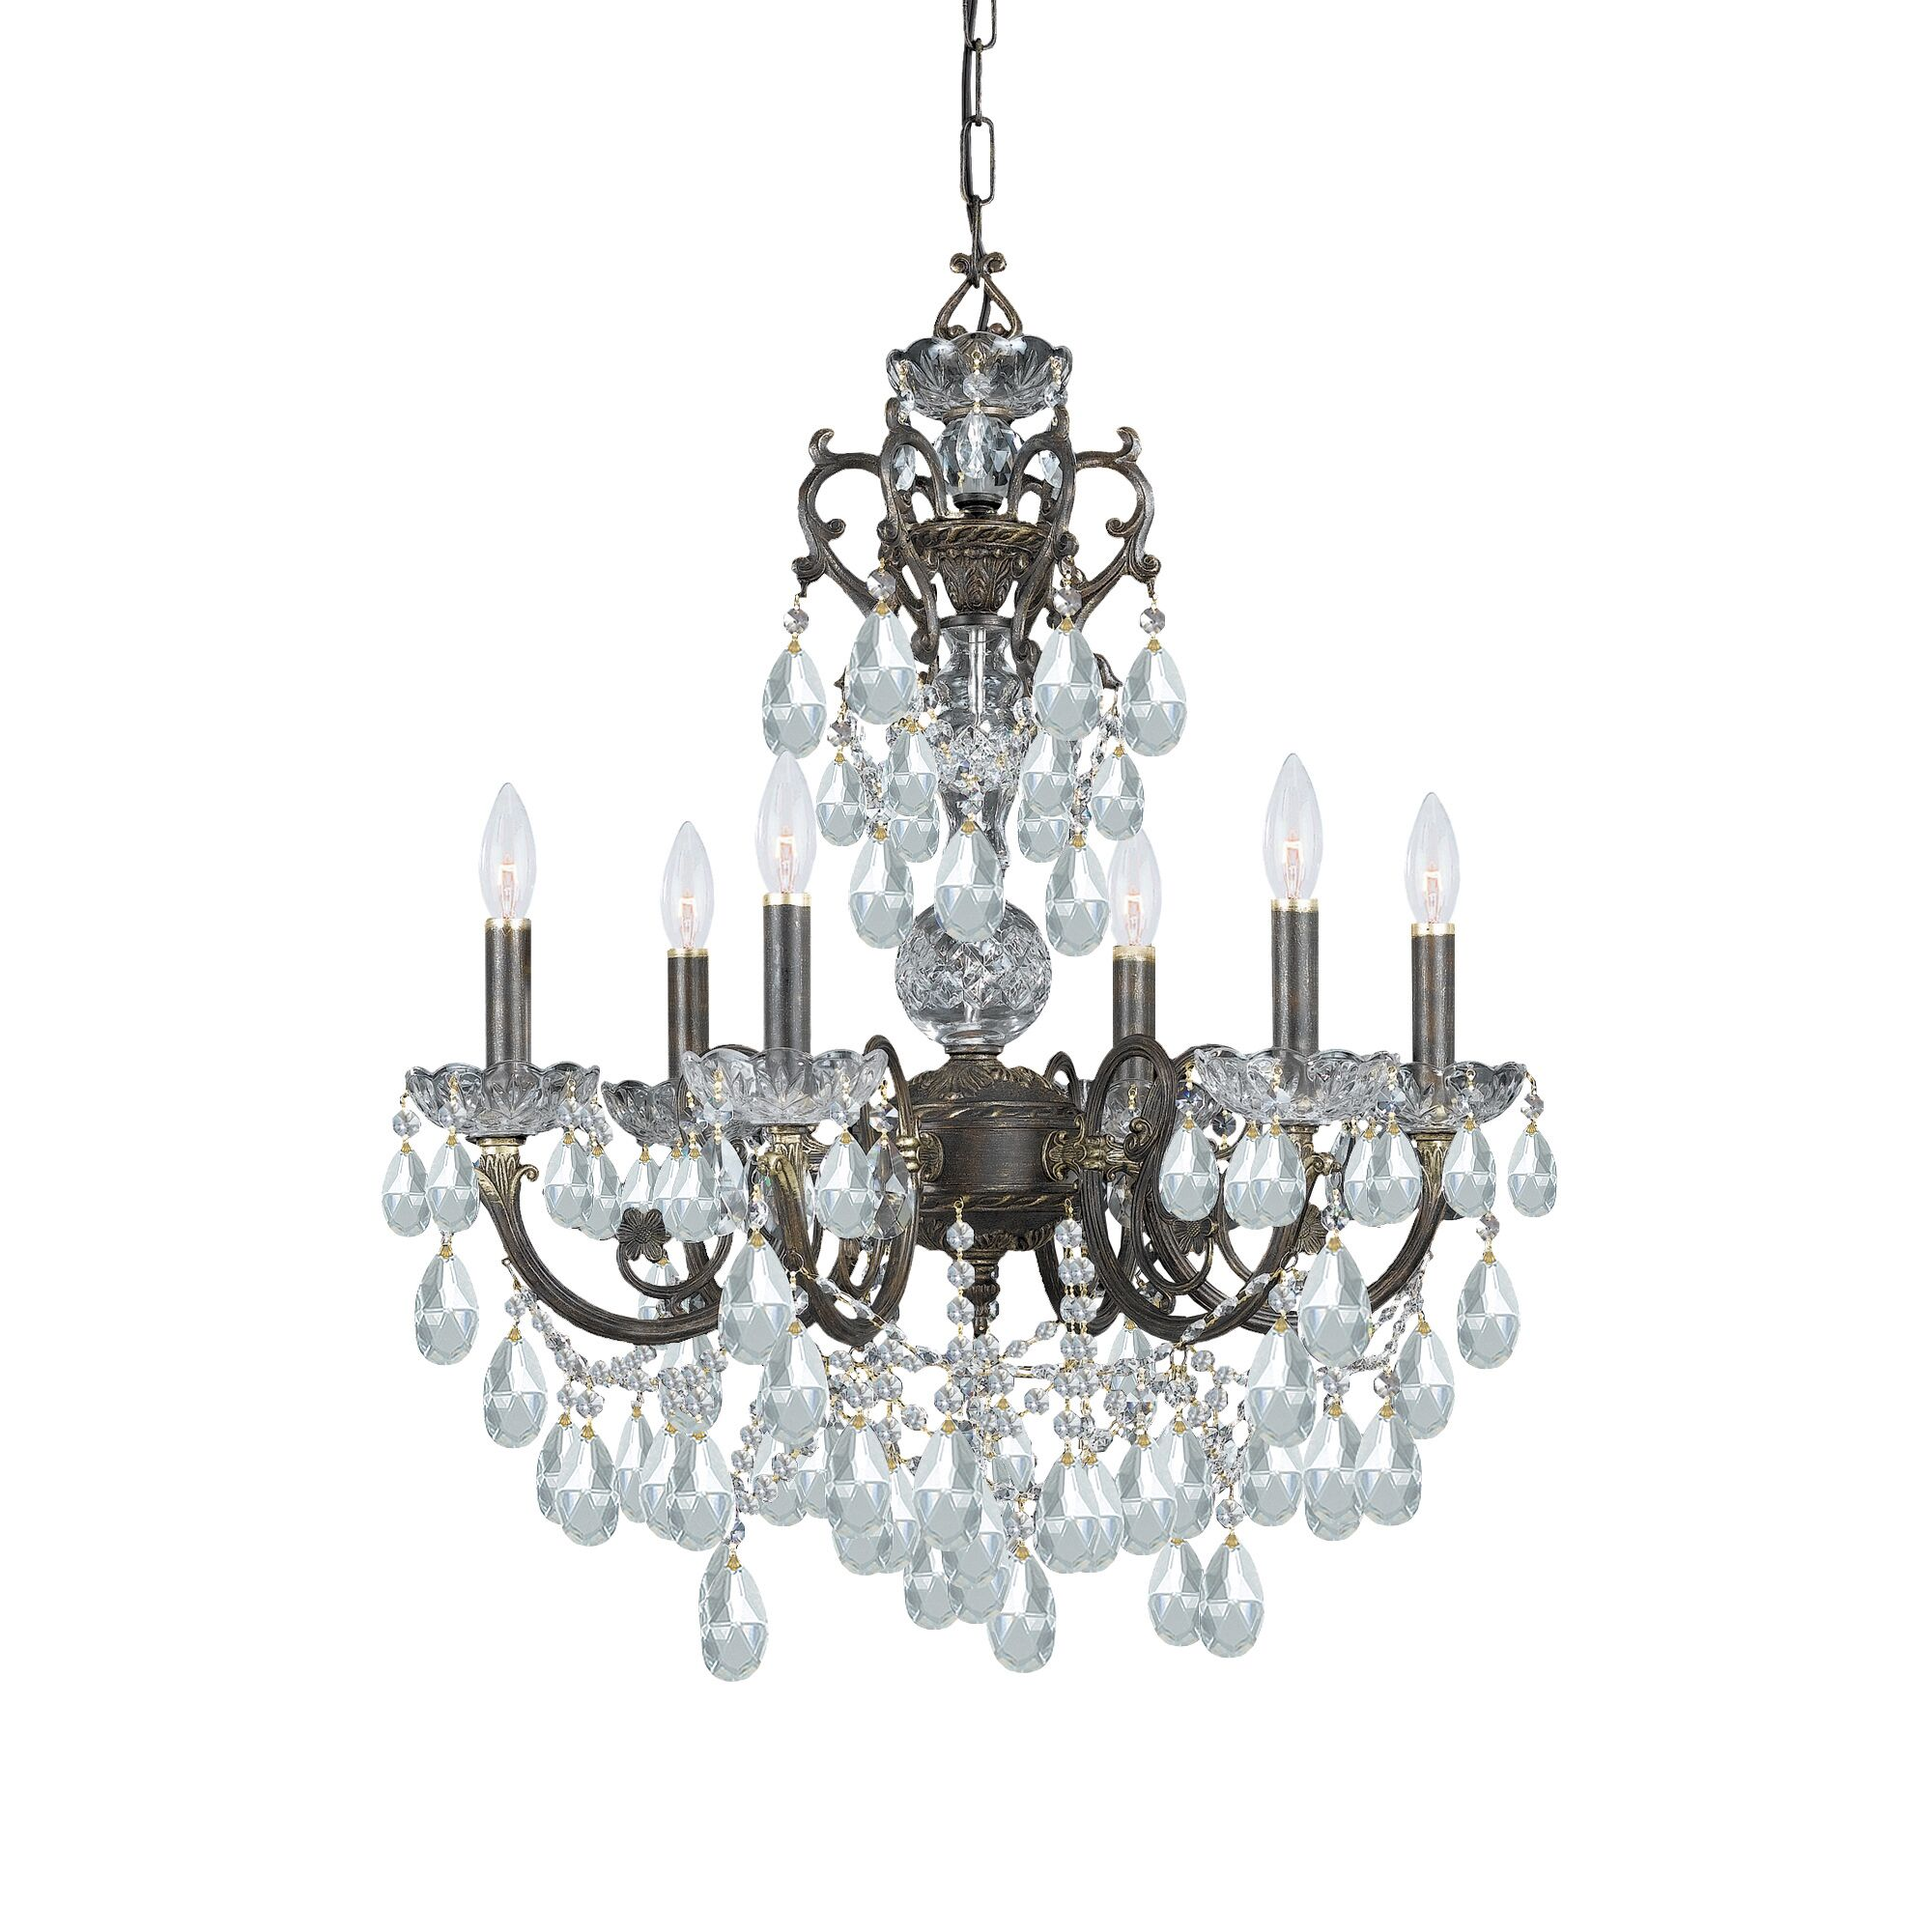 Markenfield 6-Light Candle Style Chandelier Crystal Type: Swarovski Spectra